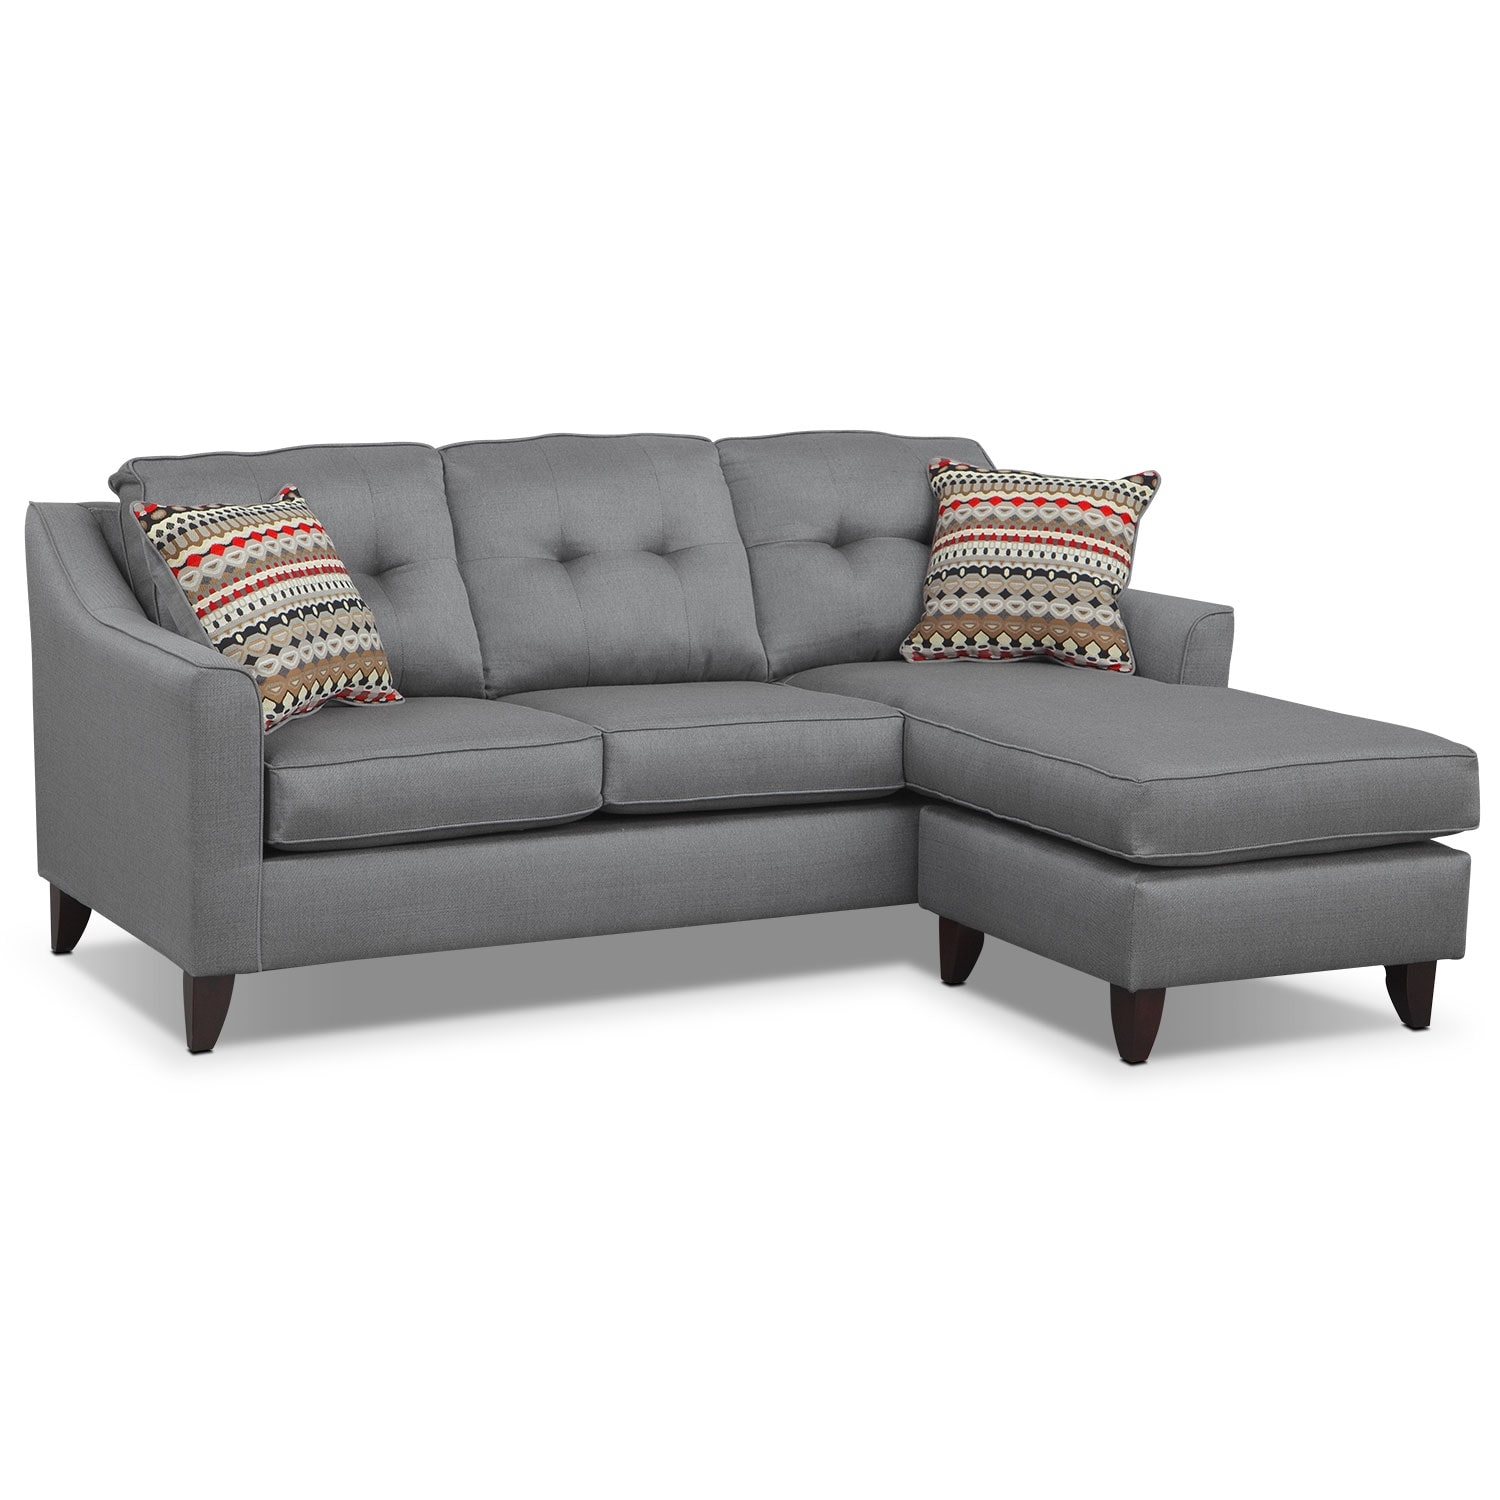 Marco Chaise Sofa   Gray